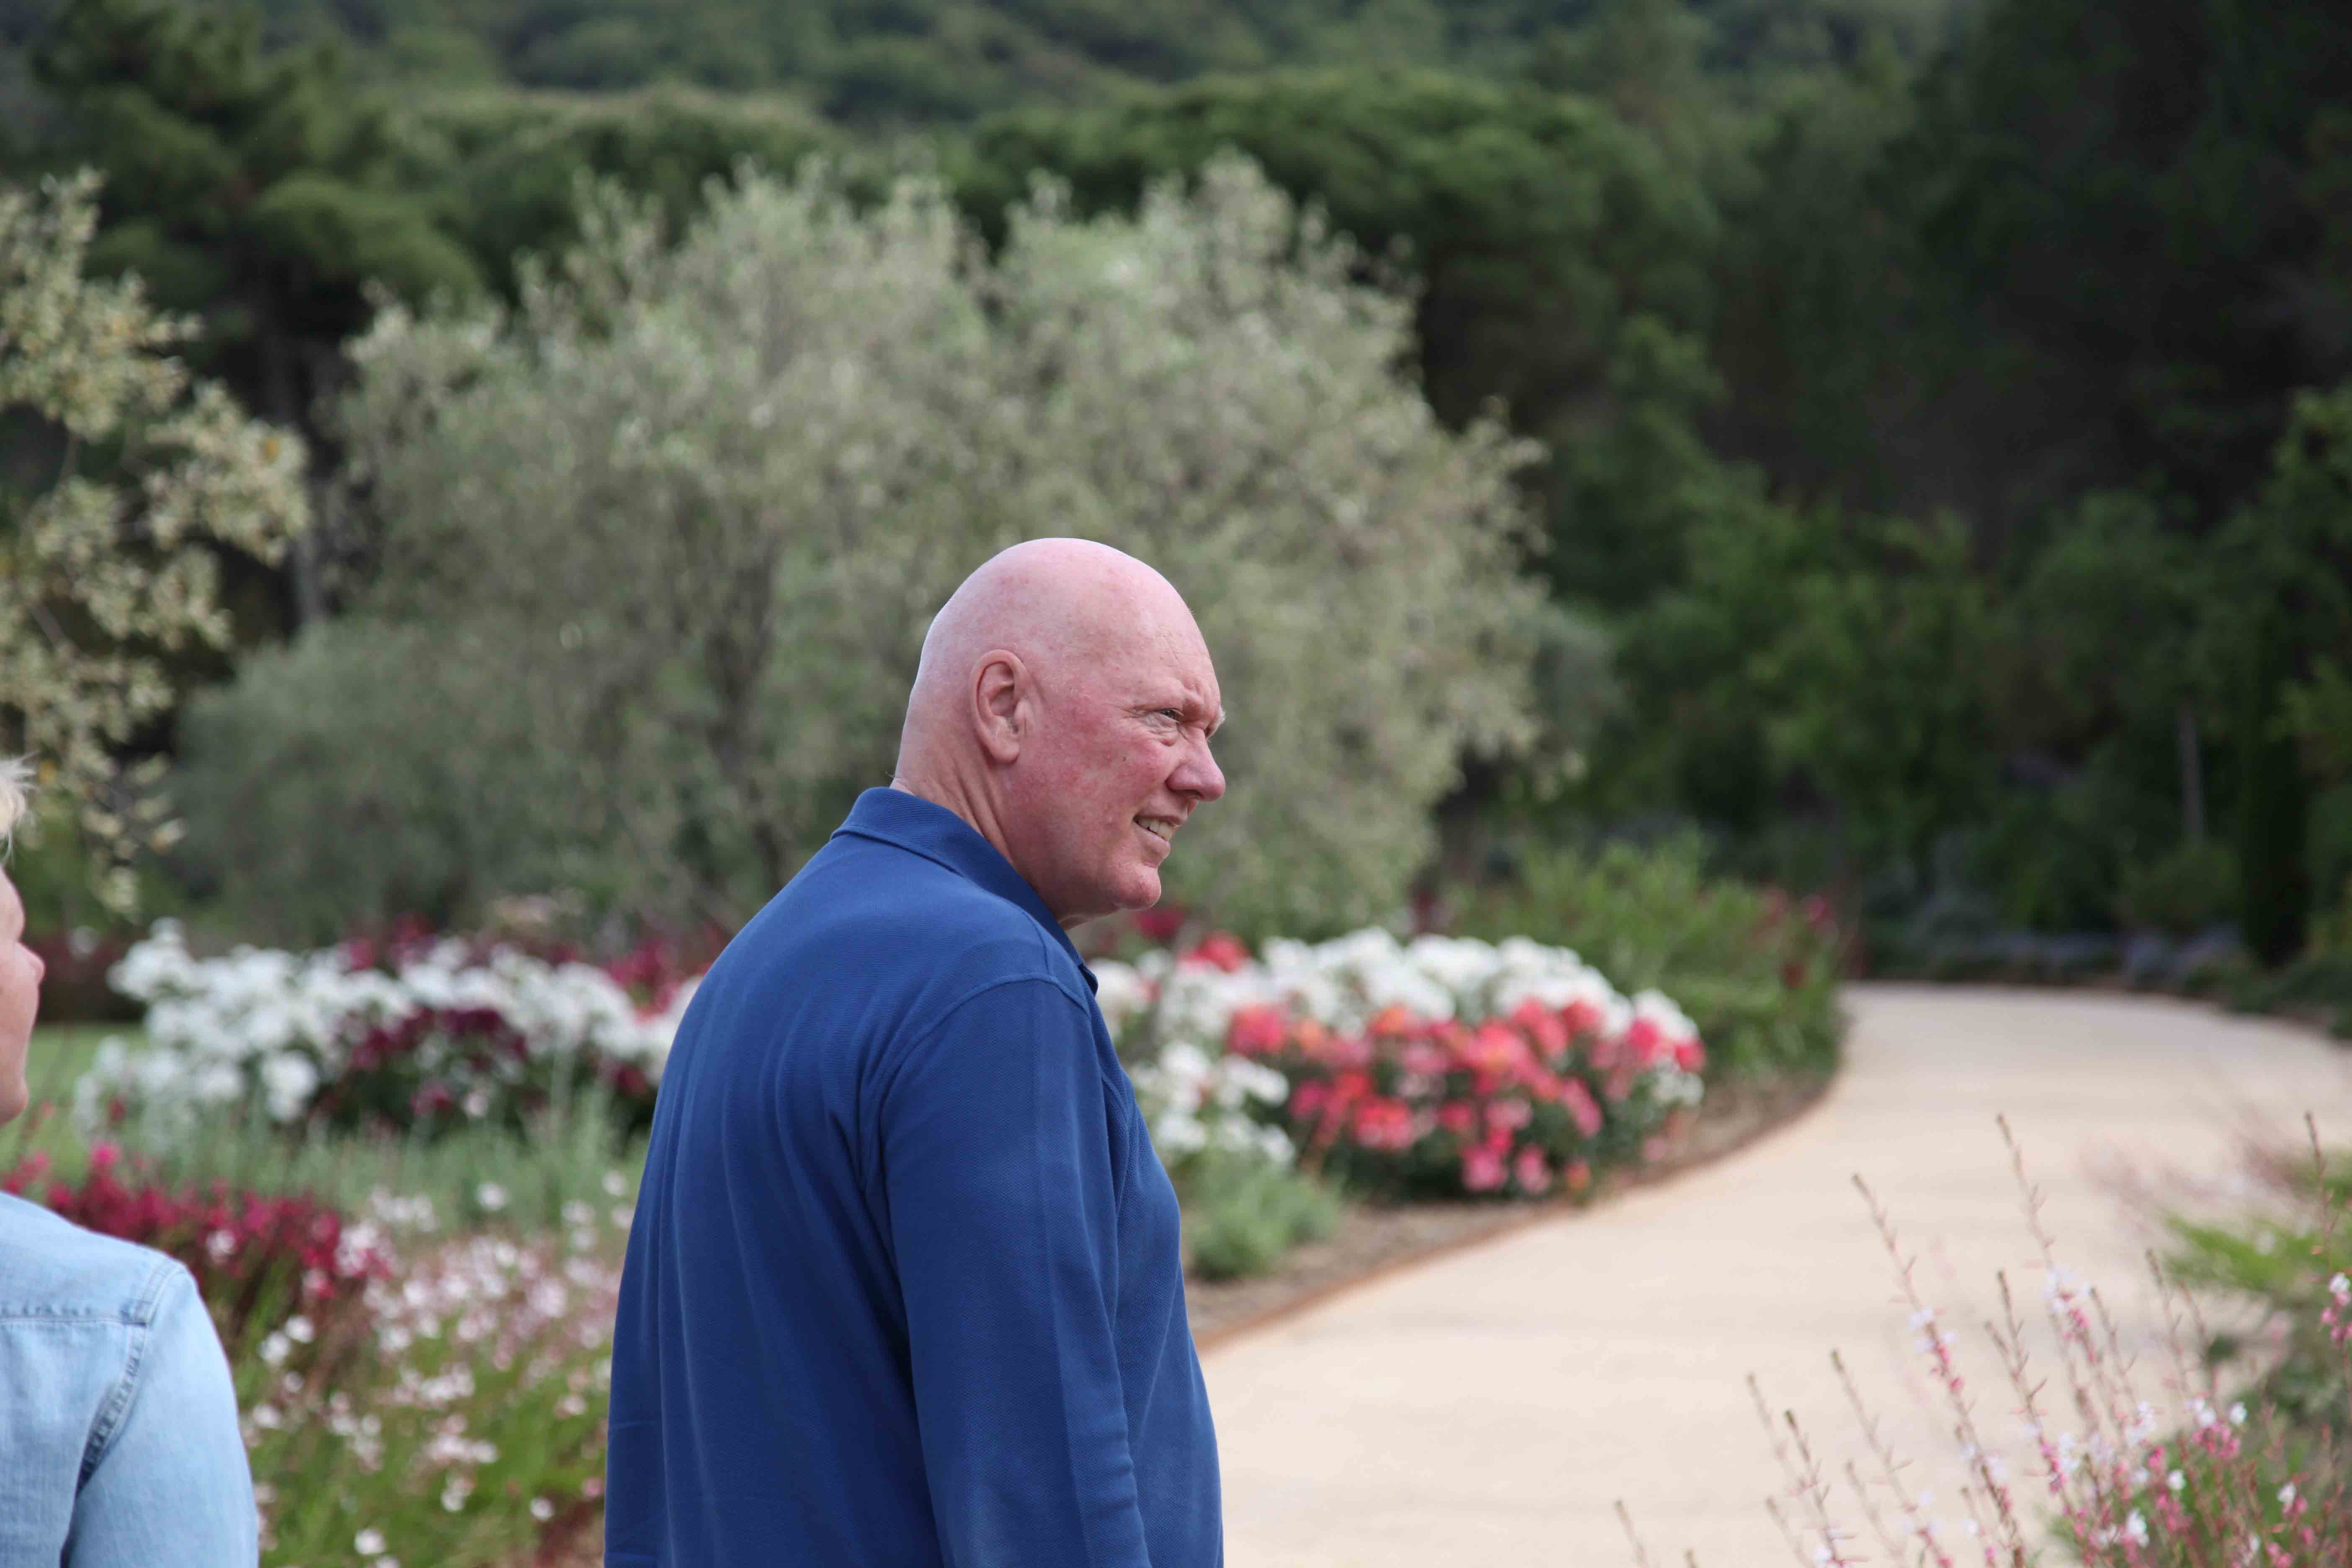 Photo Report: Behind The Scenes At The Monaco Grand Prix 2016 With TAG Heuer CEO Jean-Claude Biver Photo Report: Behind The Scenes At The Monaco Grand Prix 2016 With TAG Heuer CEO Jean-Claude Biver IMG 0230